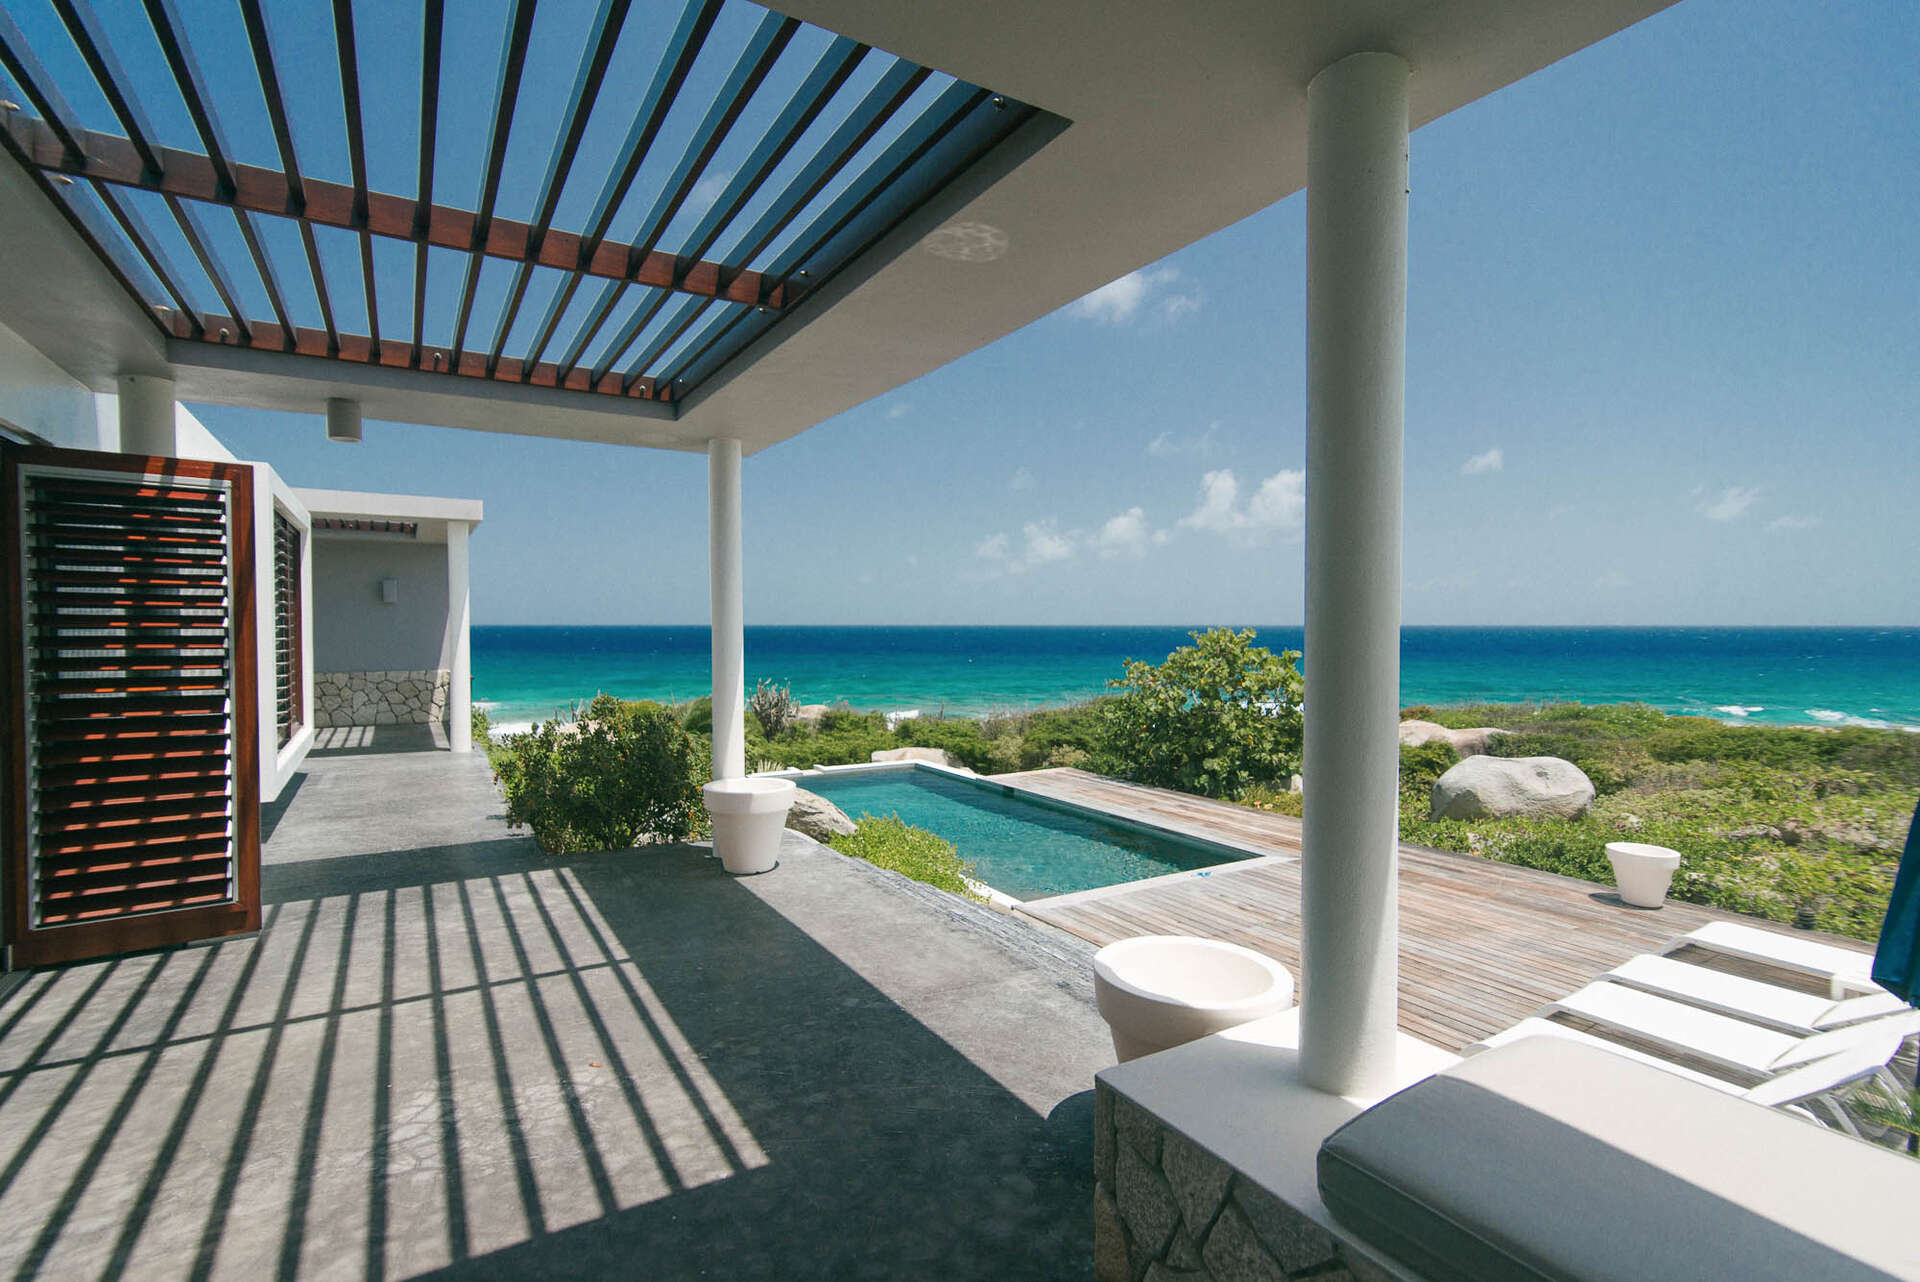 Luxury villa rentals caribbean - British virgin islands - Virgin gorda - Crooks bay - Bayhouse Villa - Image 1/13